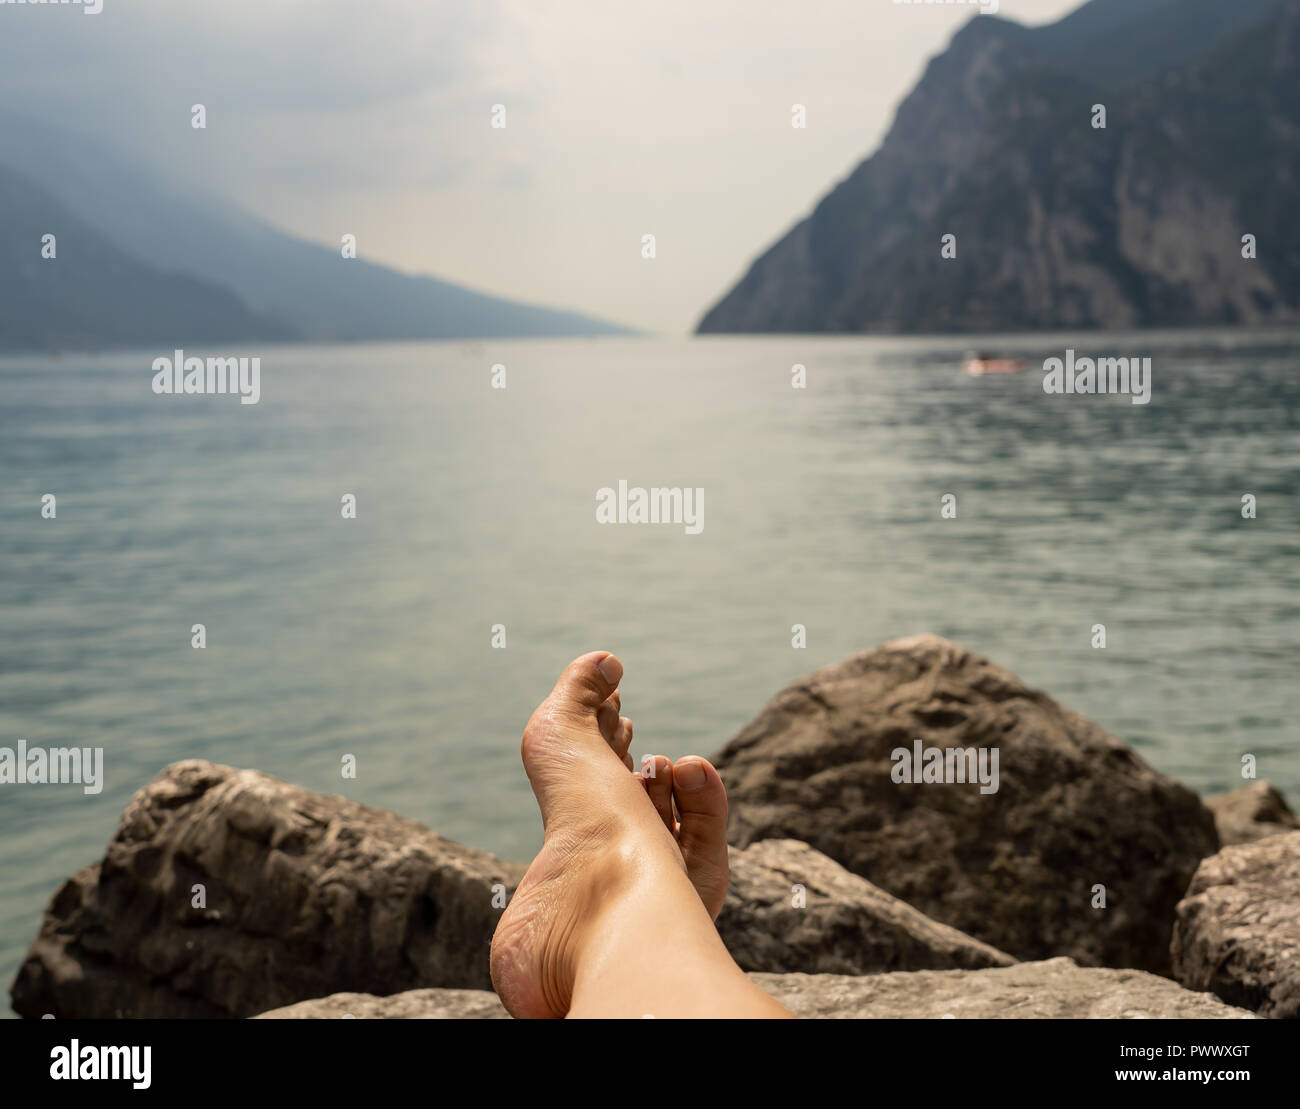 Relax Fh Rt Close Up Feet Of Woman Relaxing By A Beautiful Big Lake Lying On